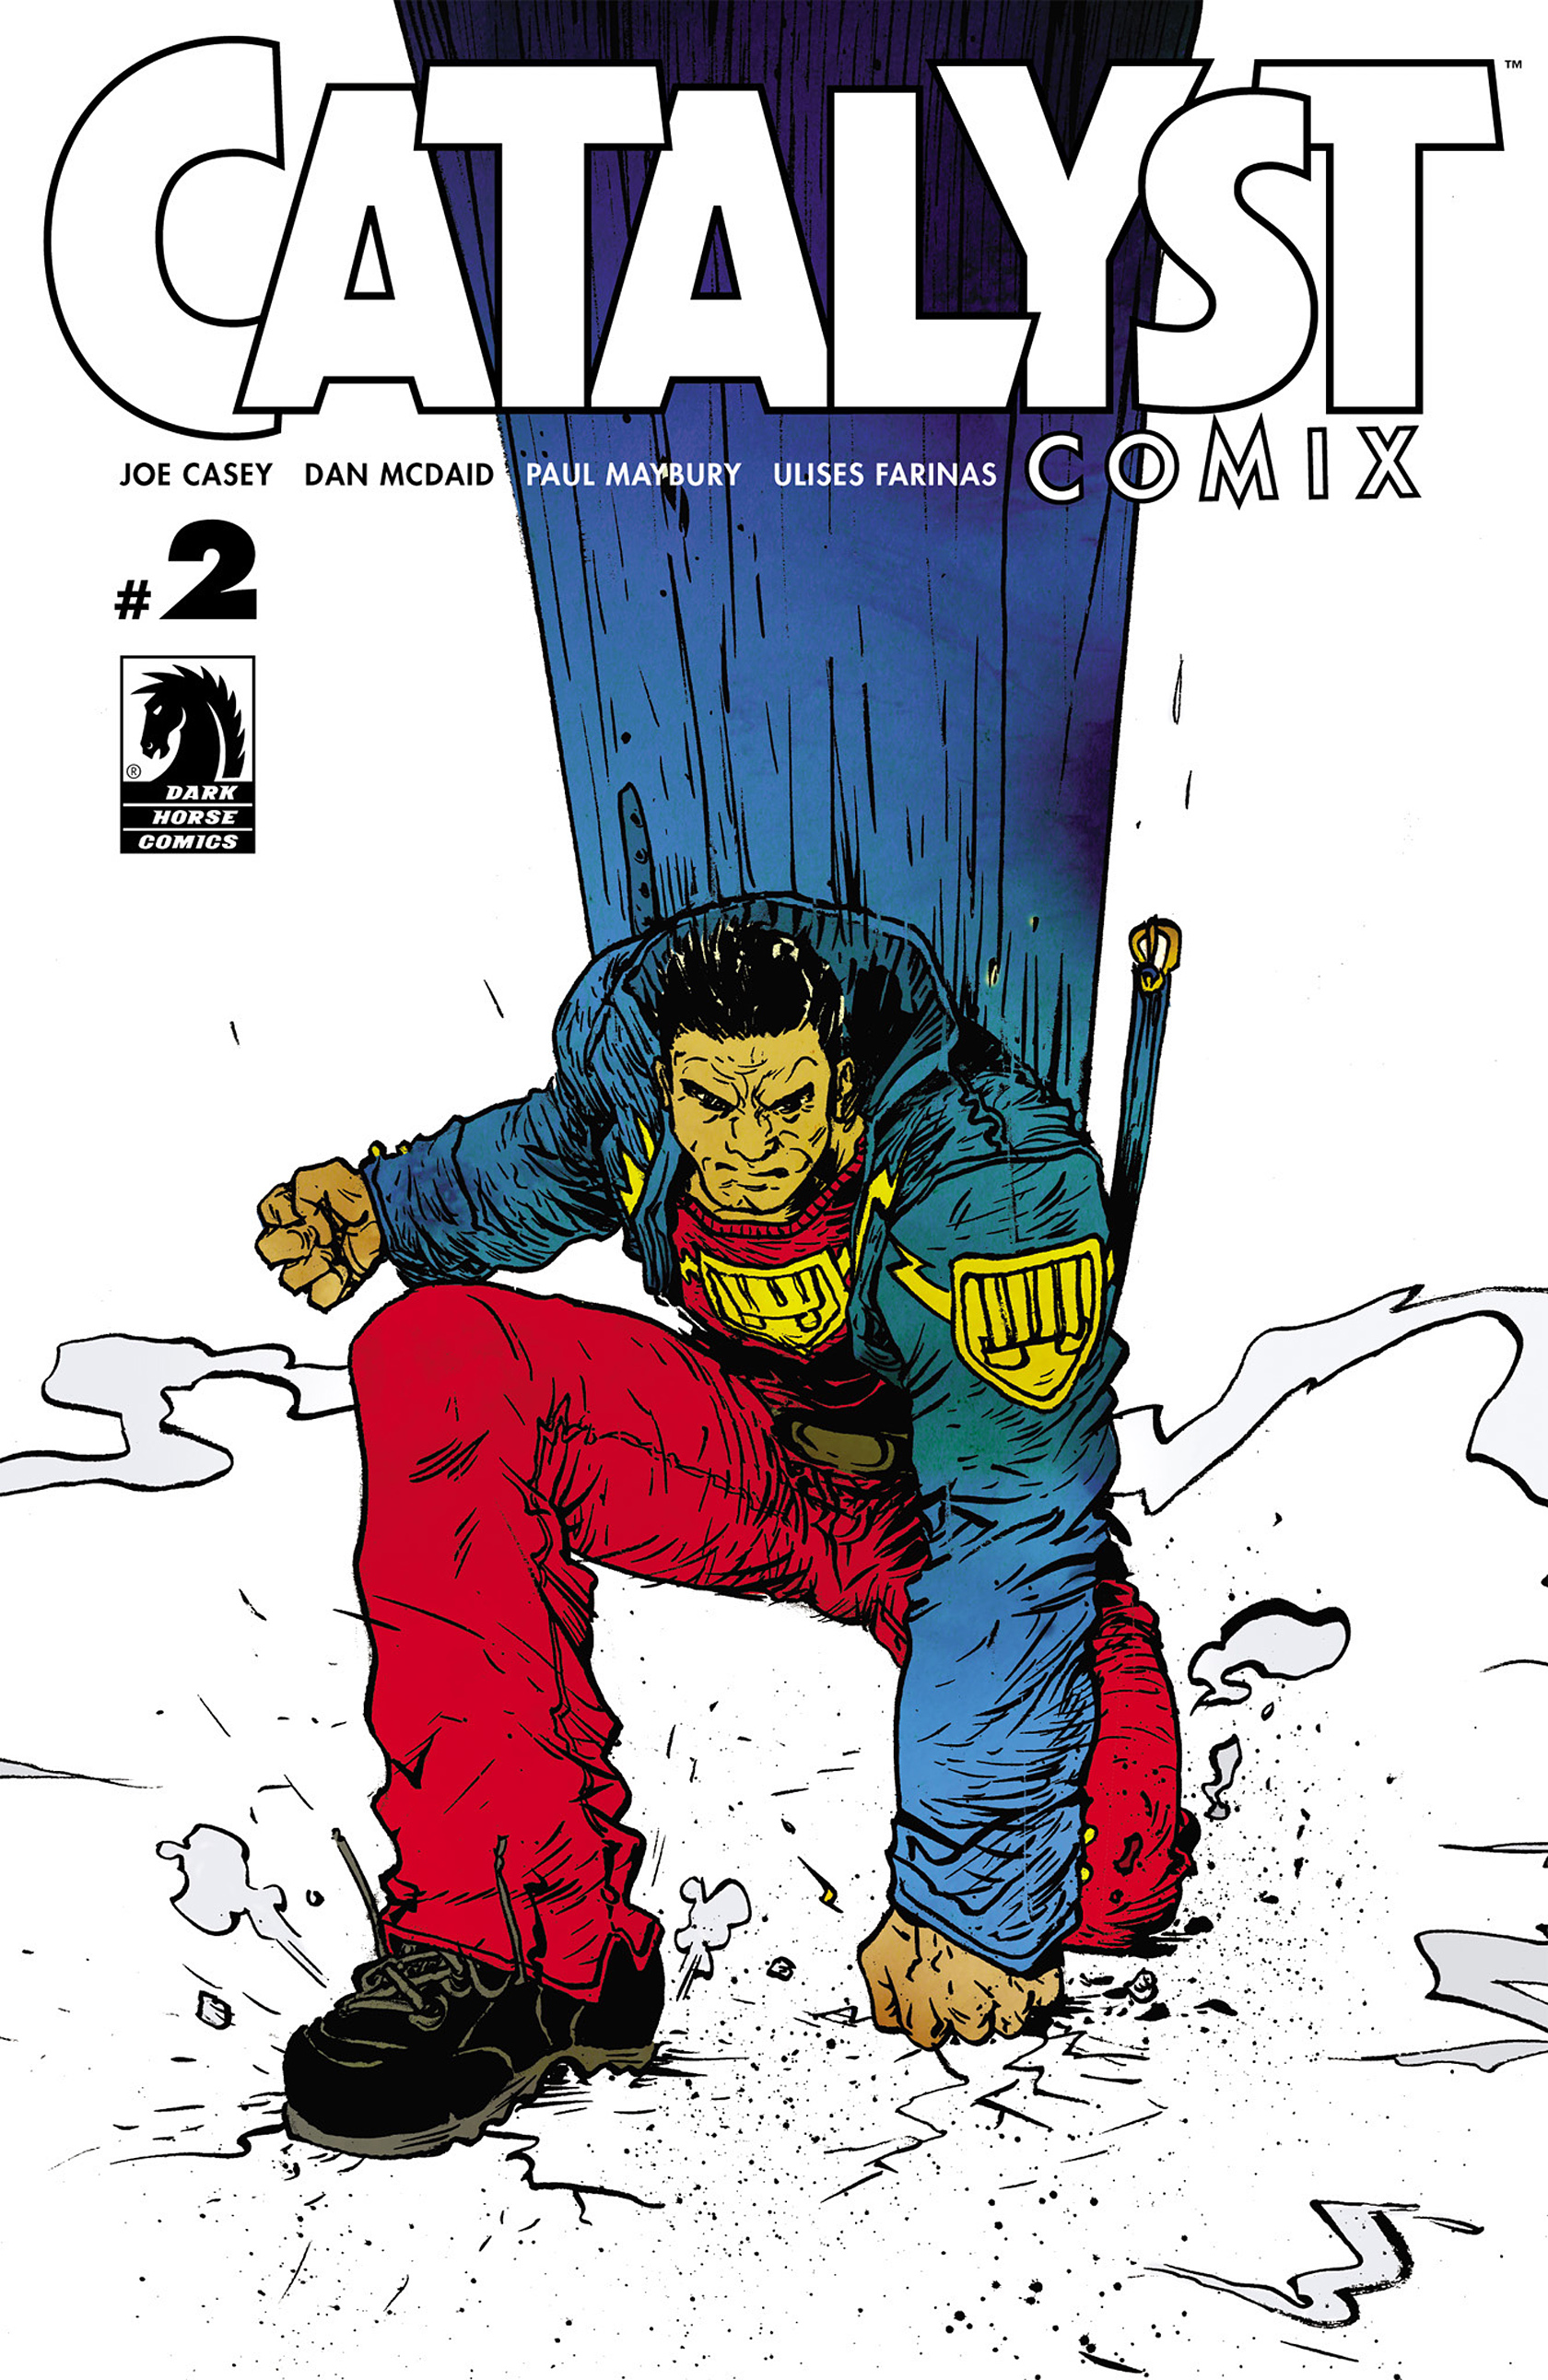 Read online Catalyst Comix comic -  Issue #2 - 1